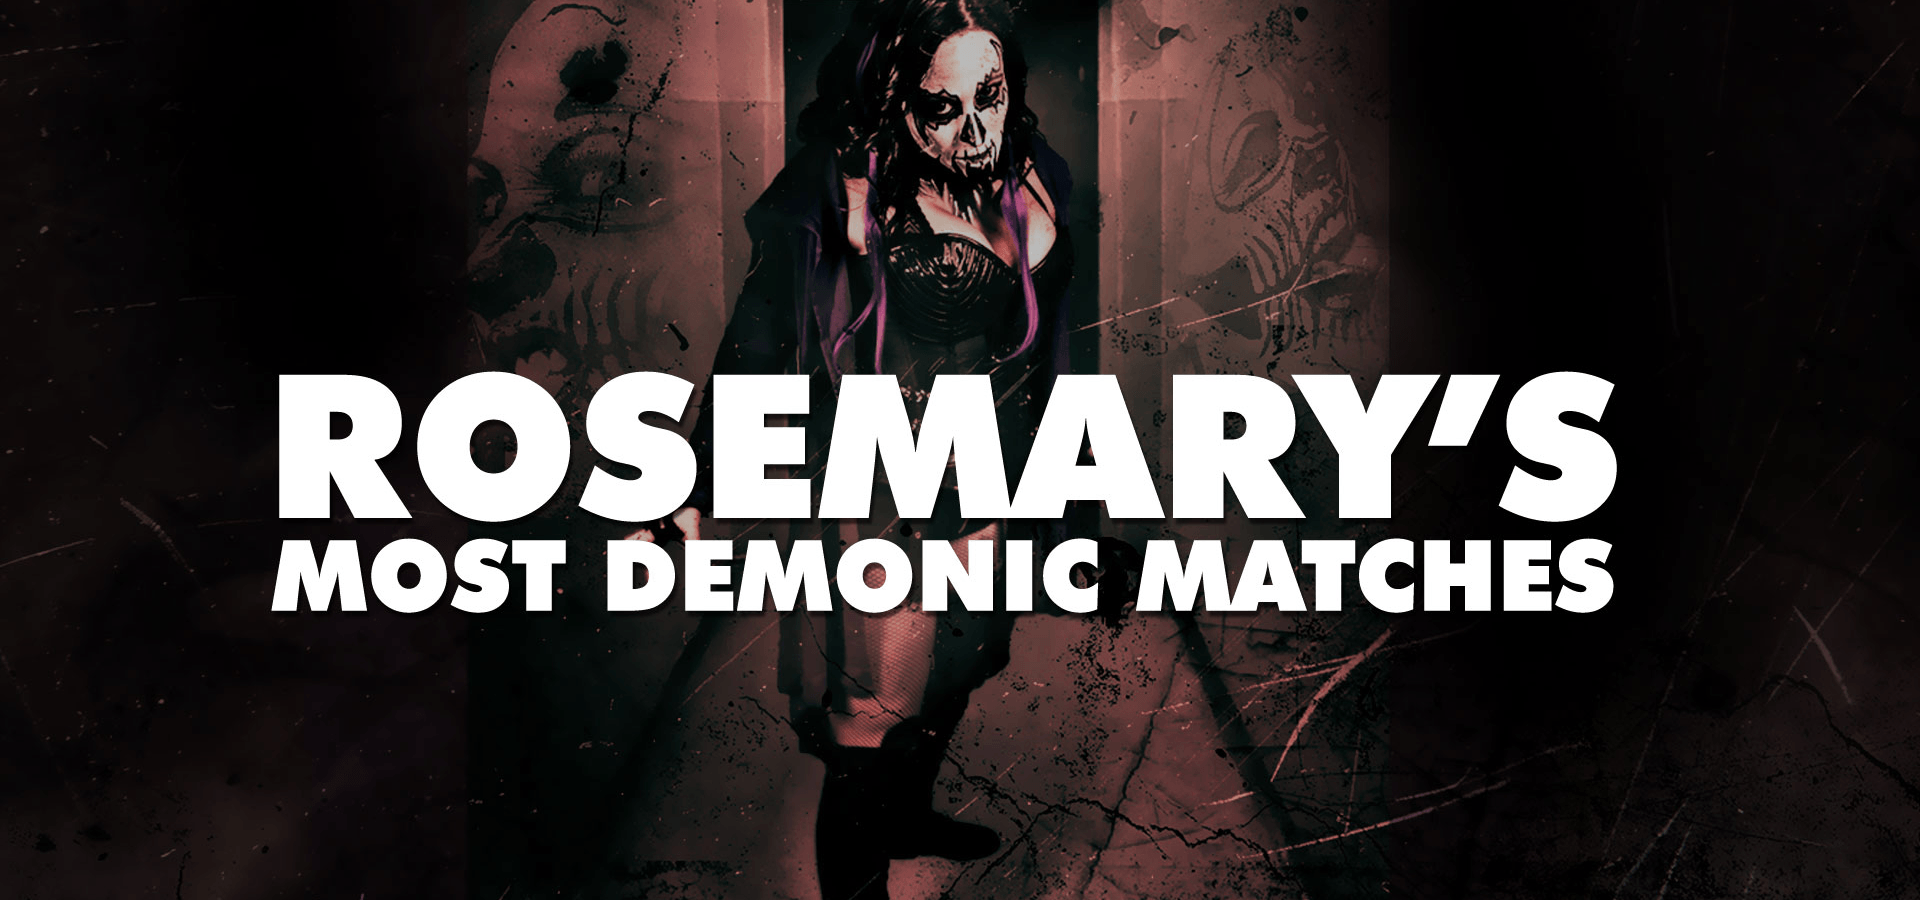 Rosemary's Most Demonic Matches